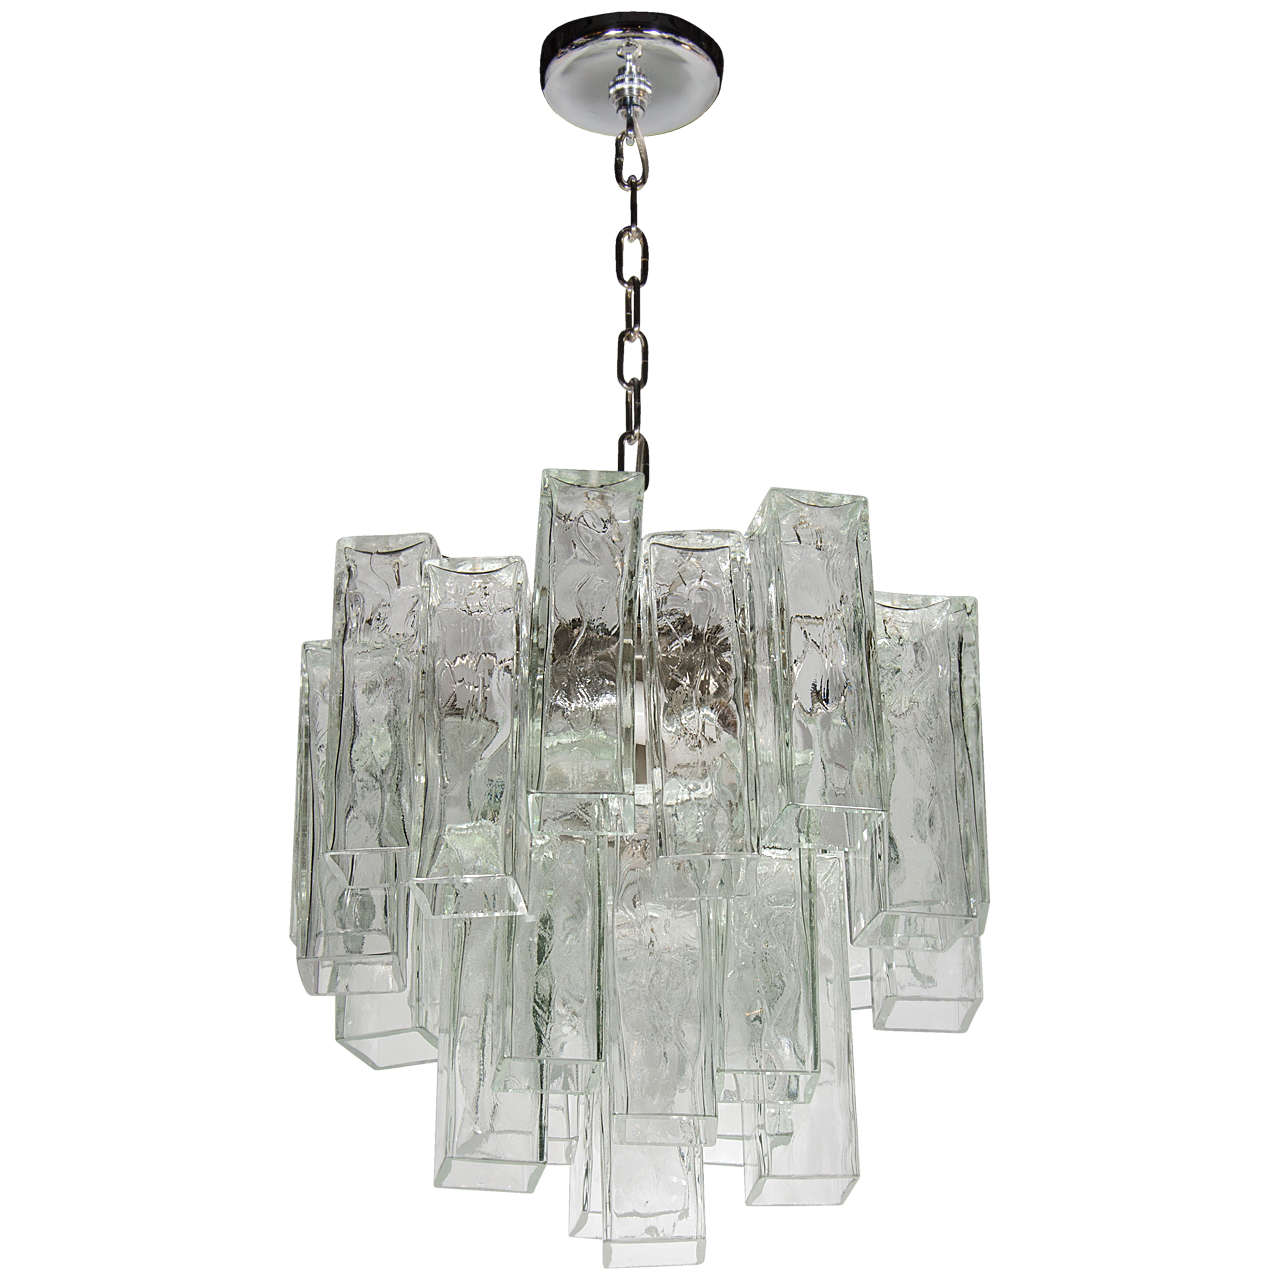 Mid century tronchi style chandelier with square tubular textured mid century tronchi style chandelier with square tubular textured murano glass for sale aloadofball Choice Image